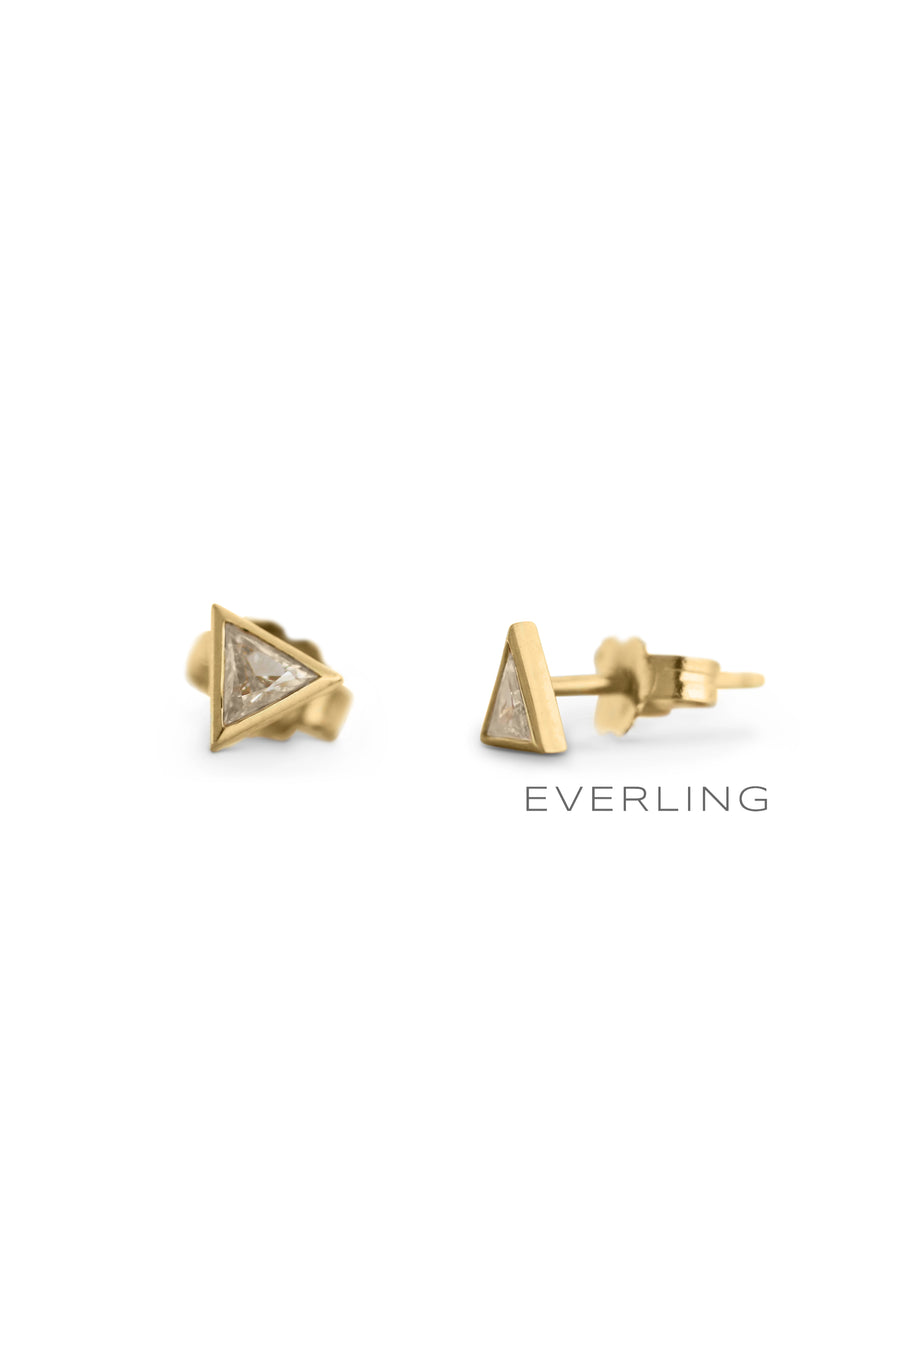 Detail- Recycled 18k Yellow Gold triangle cut diamond bezel stud earrings. #designerjewelry www.everlingjewelry.com